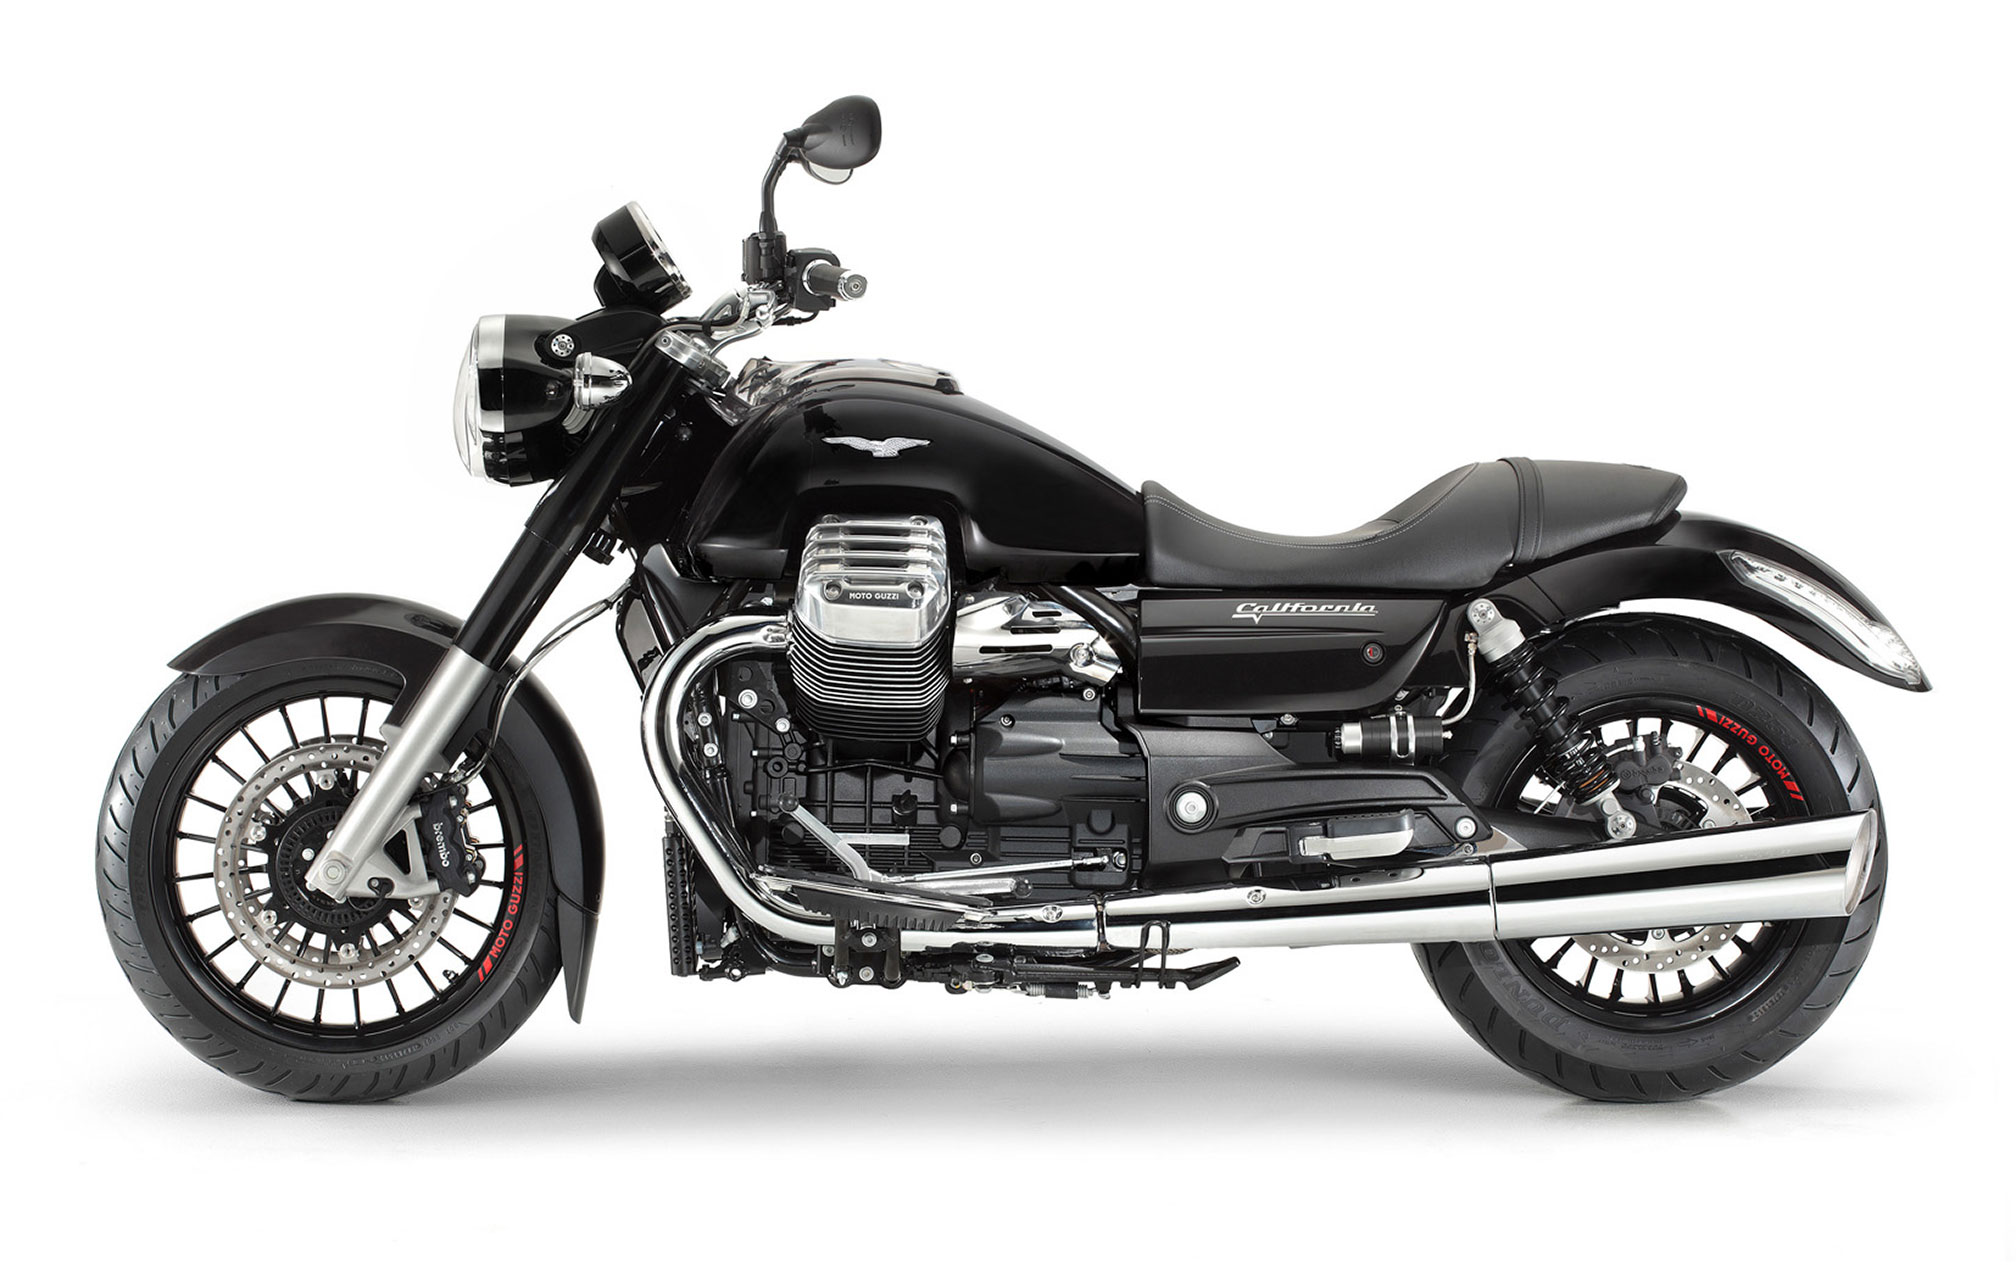 2014-2017 Moto Guzzi California 1400 Custom